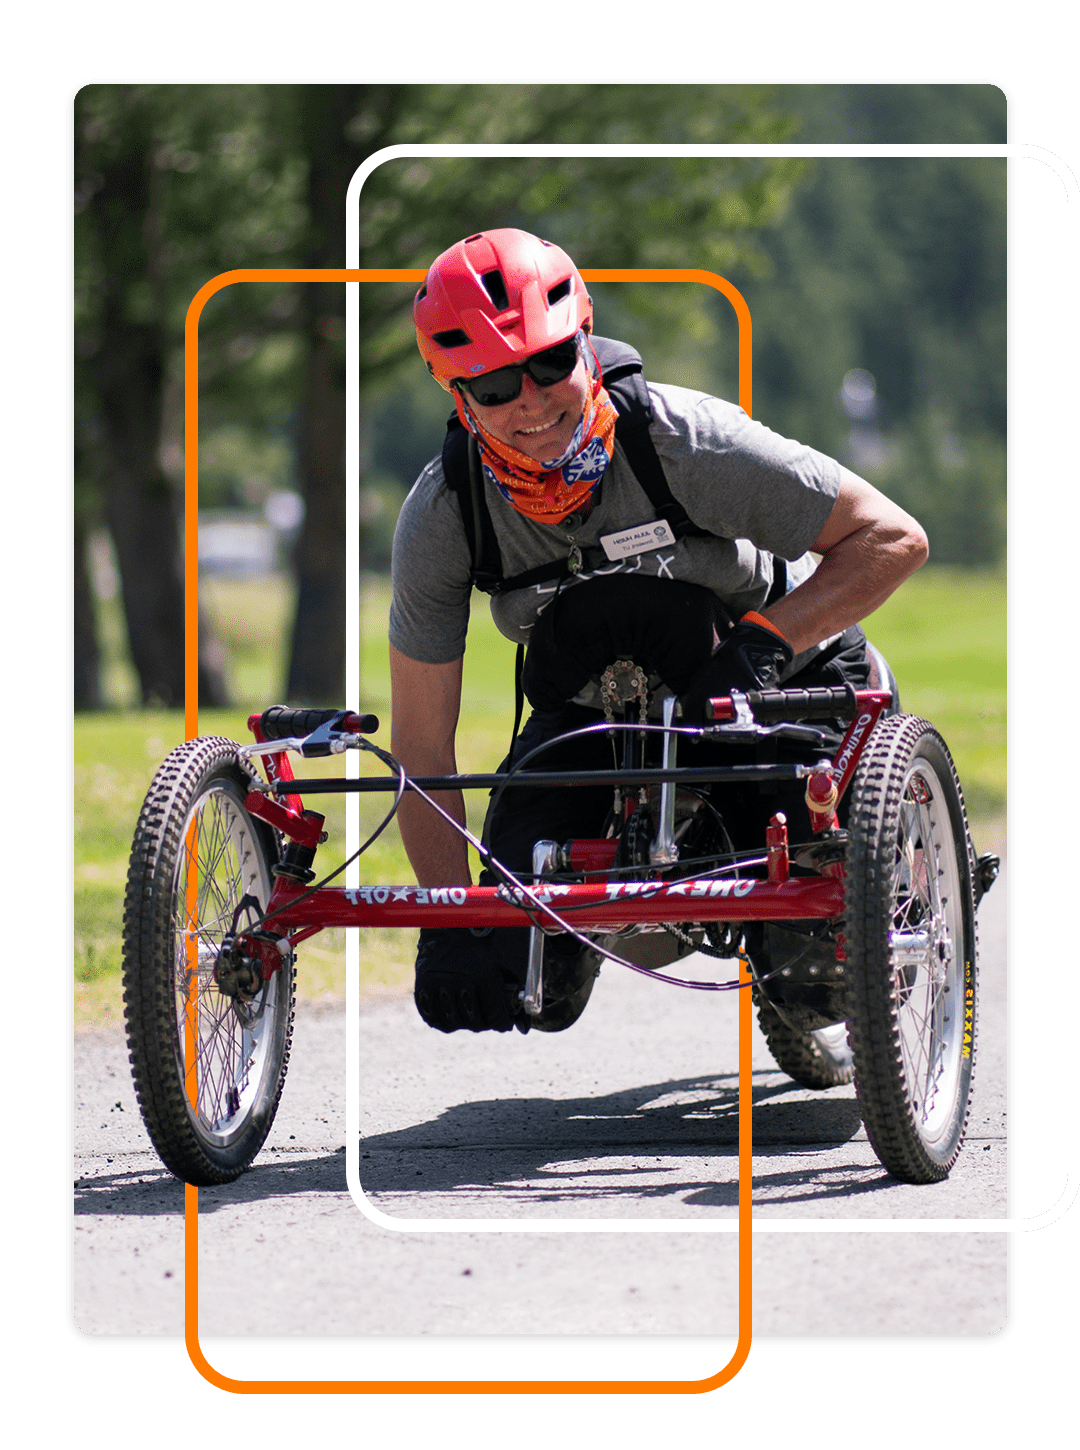 Female adventurer with disability, on a bike ride